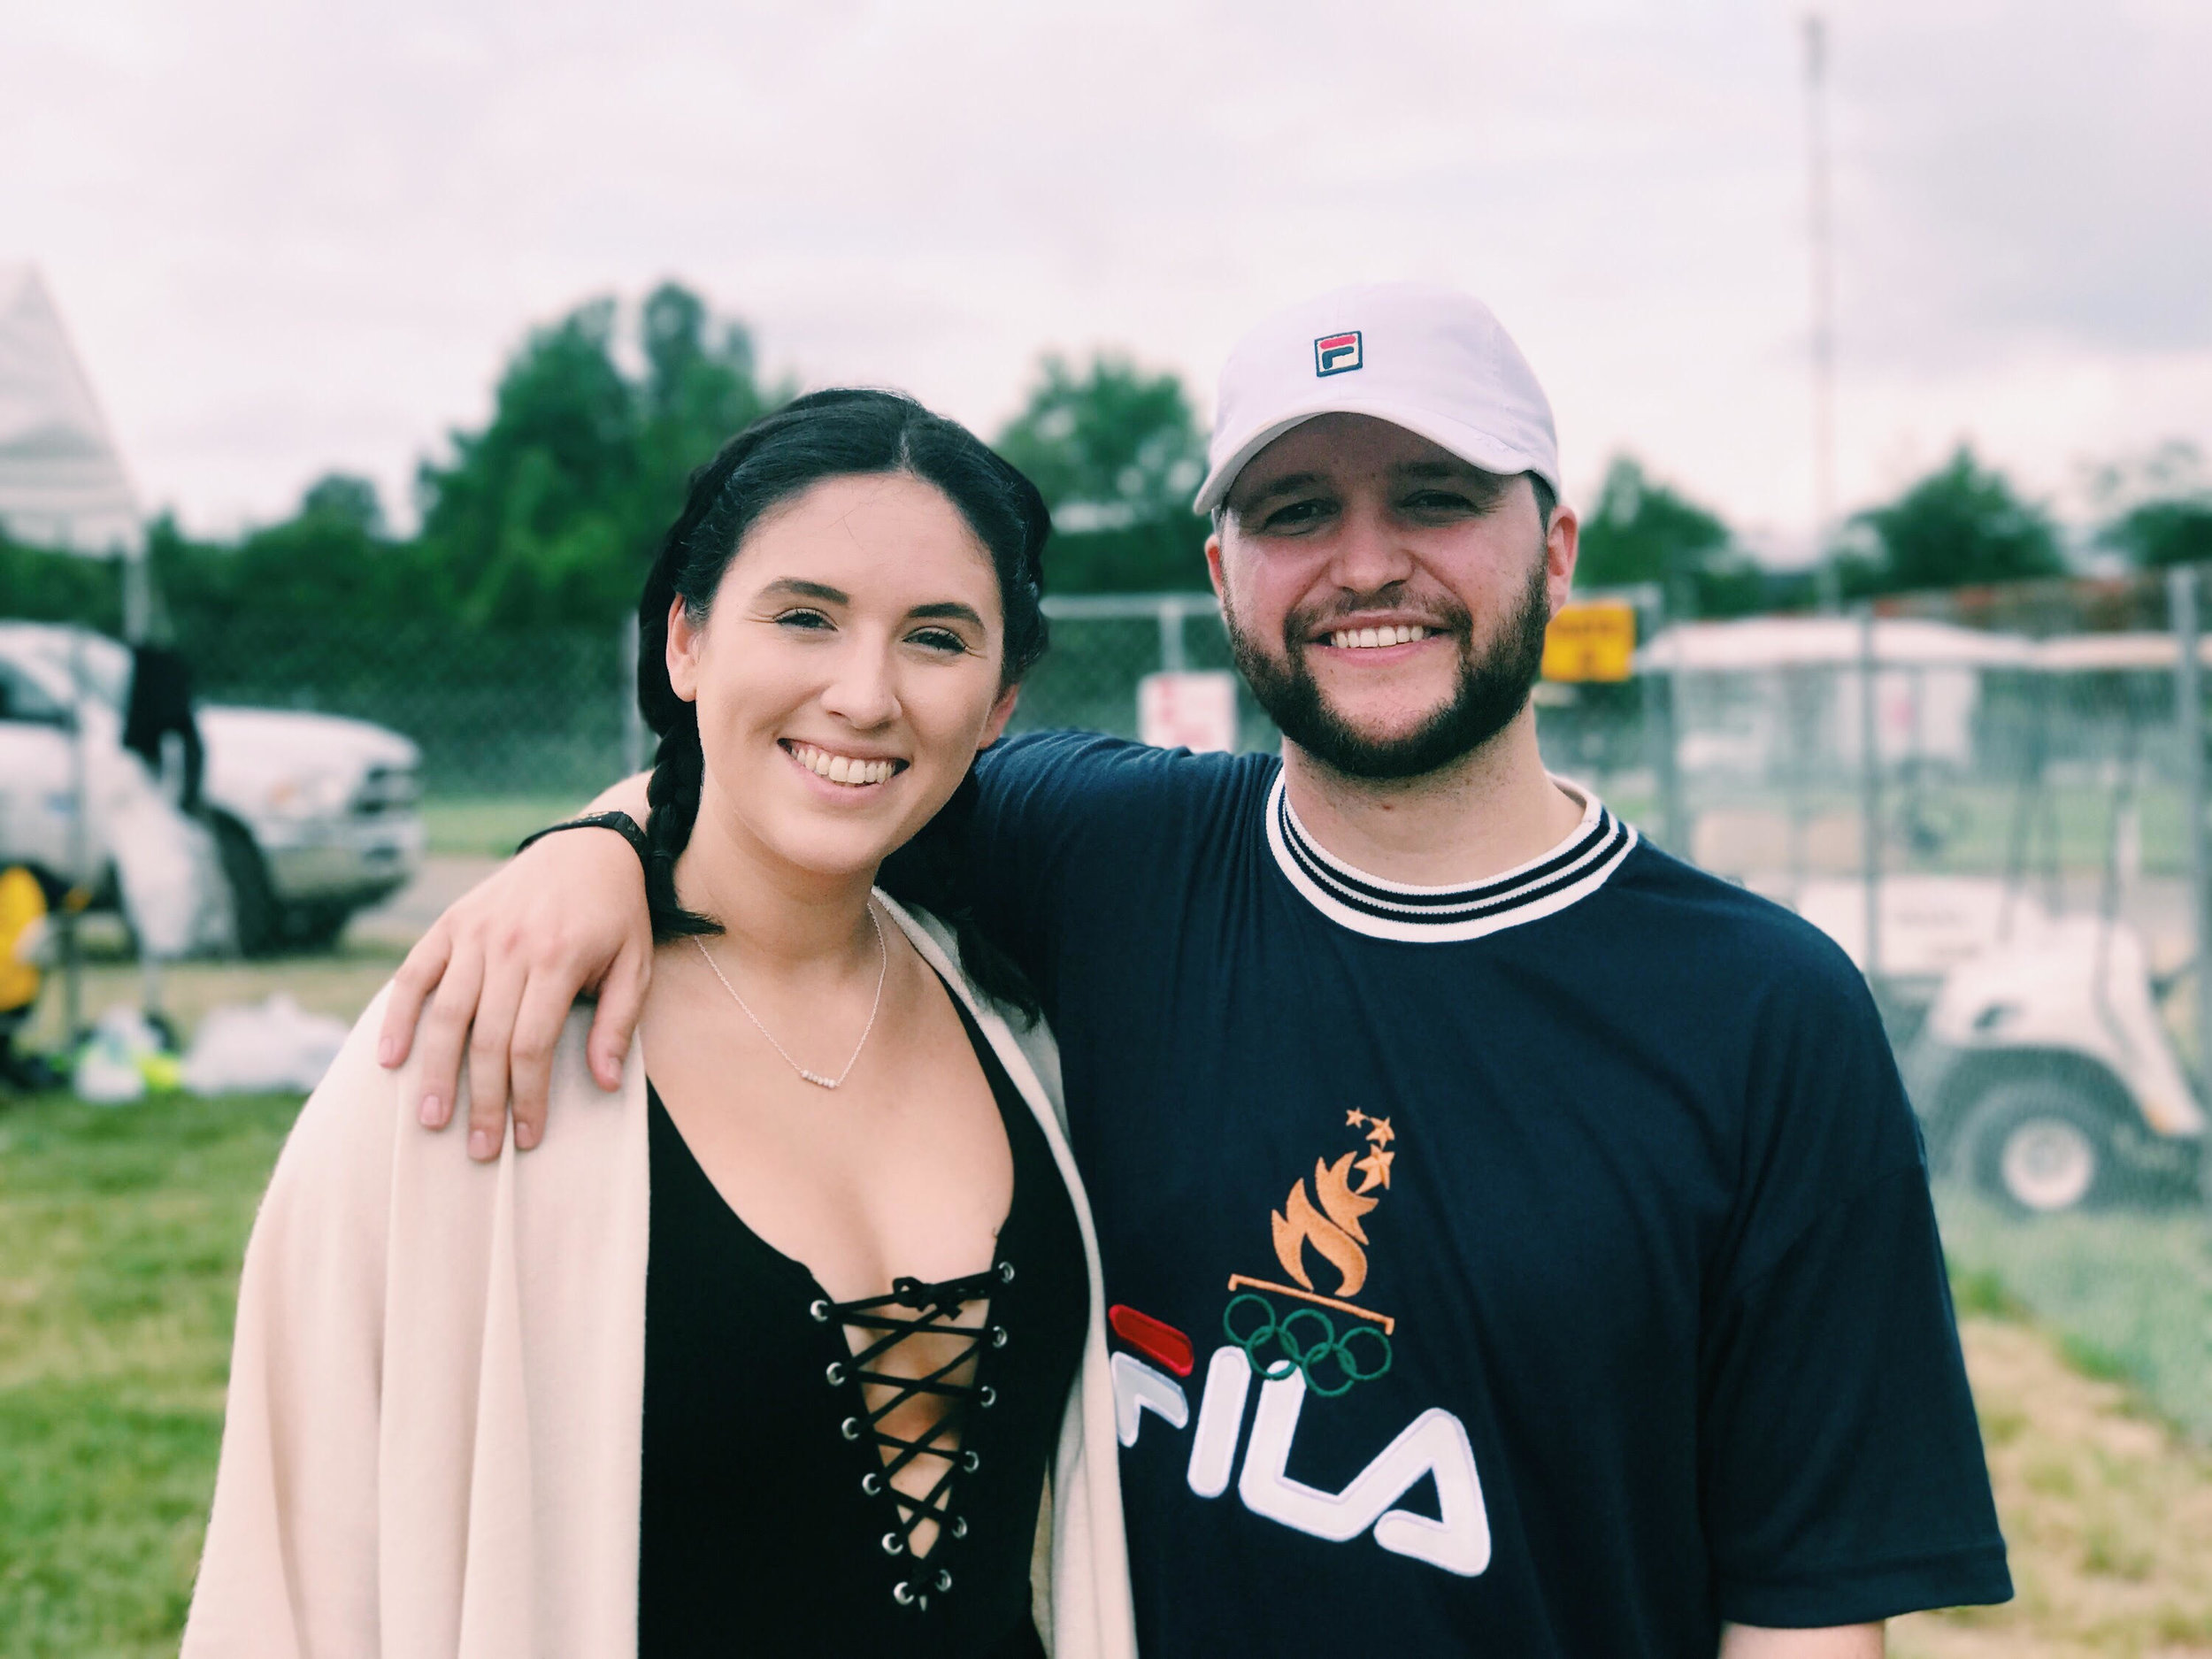 Cassidy Kotyla and Michigan singer and producer Quinn XCII at Firefly Music Festival 2017 in Dover, Delaware.